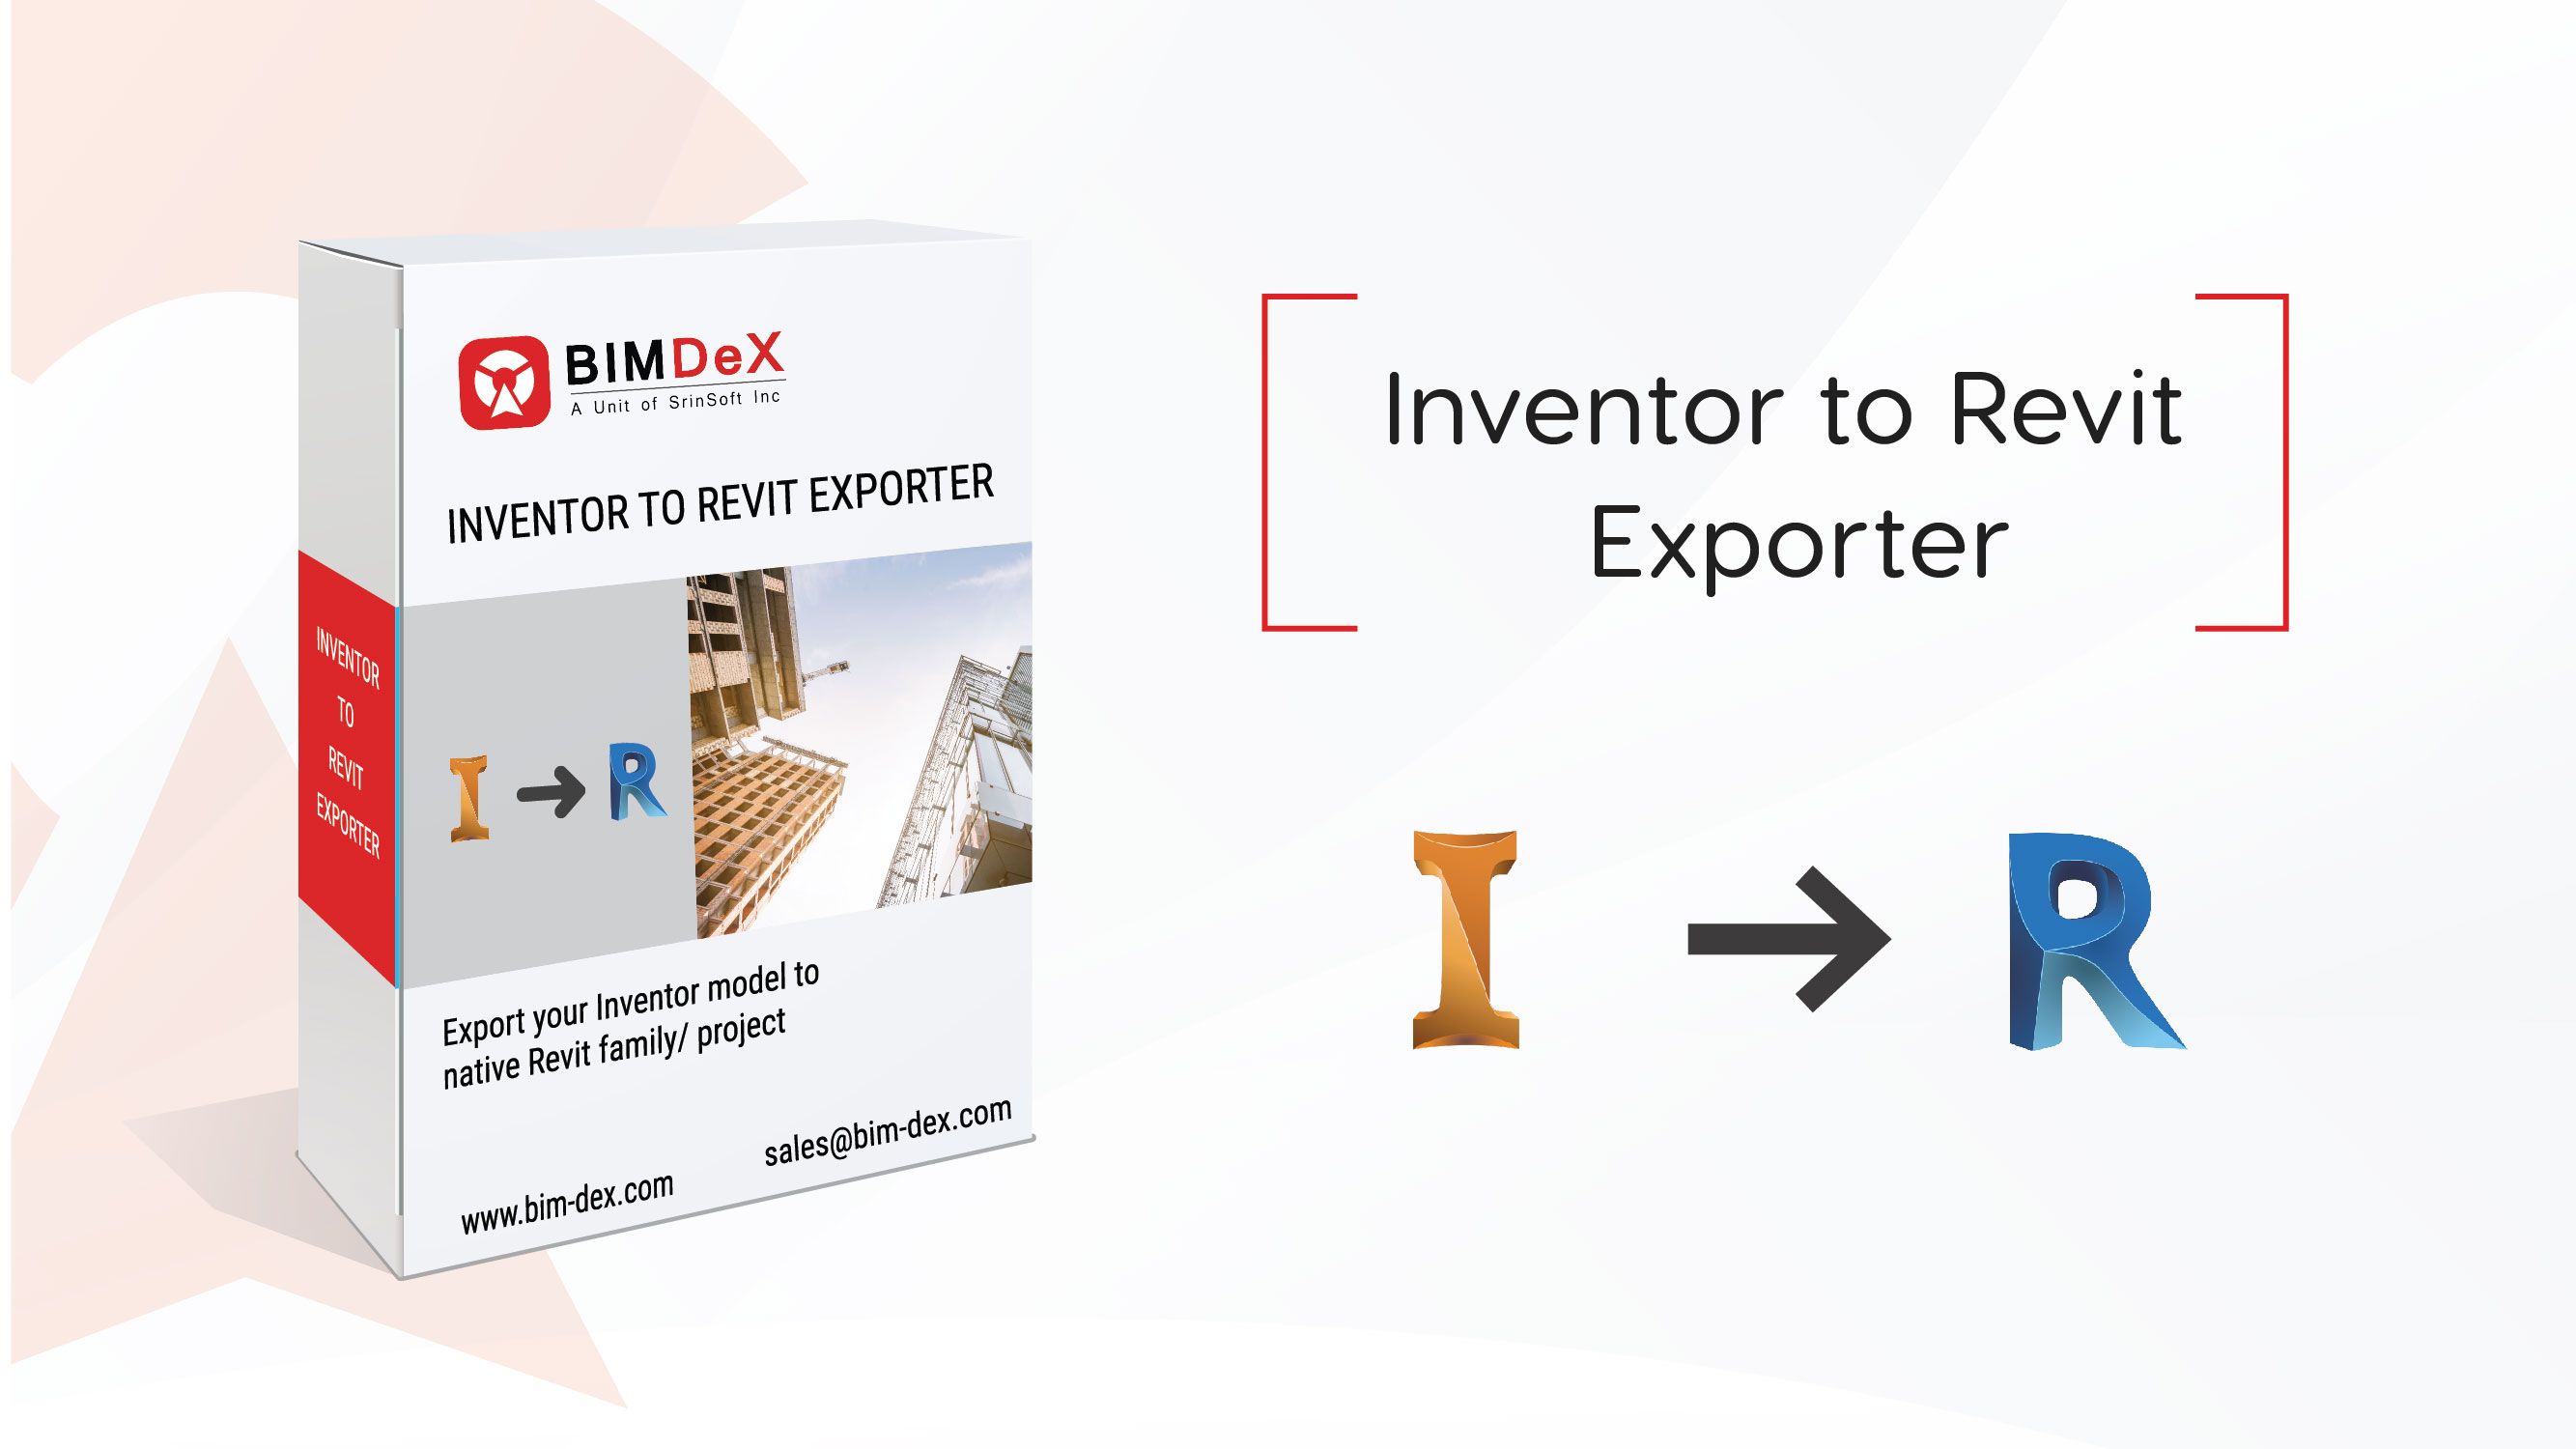 Free Inventor to Revit Exporter   Importer, Converter, plug-in, add